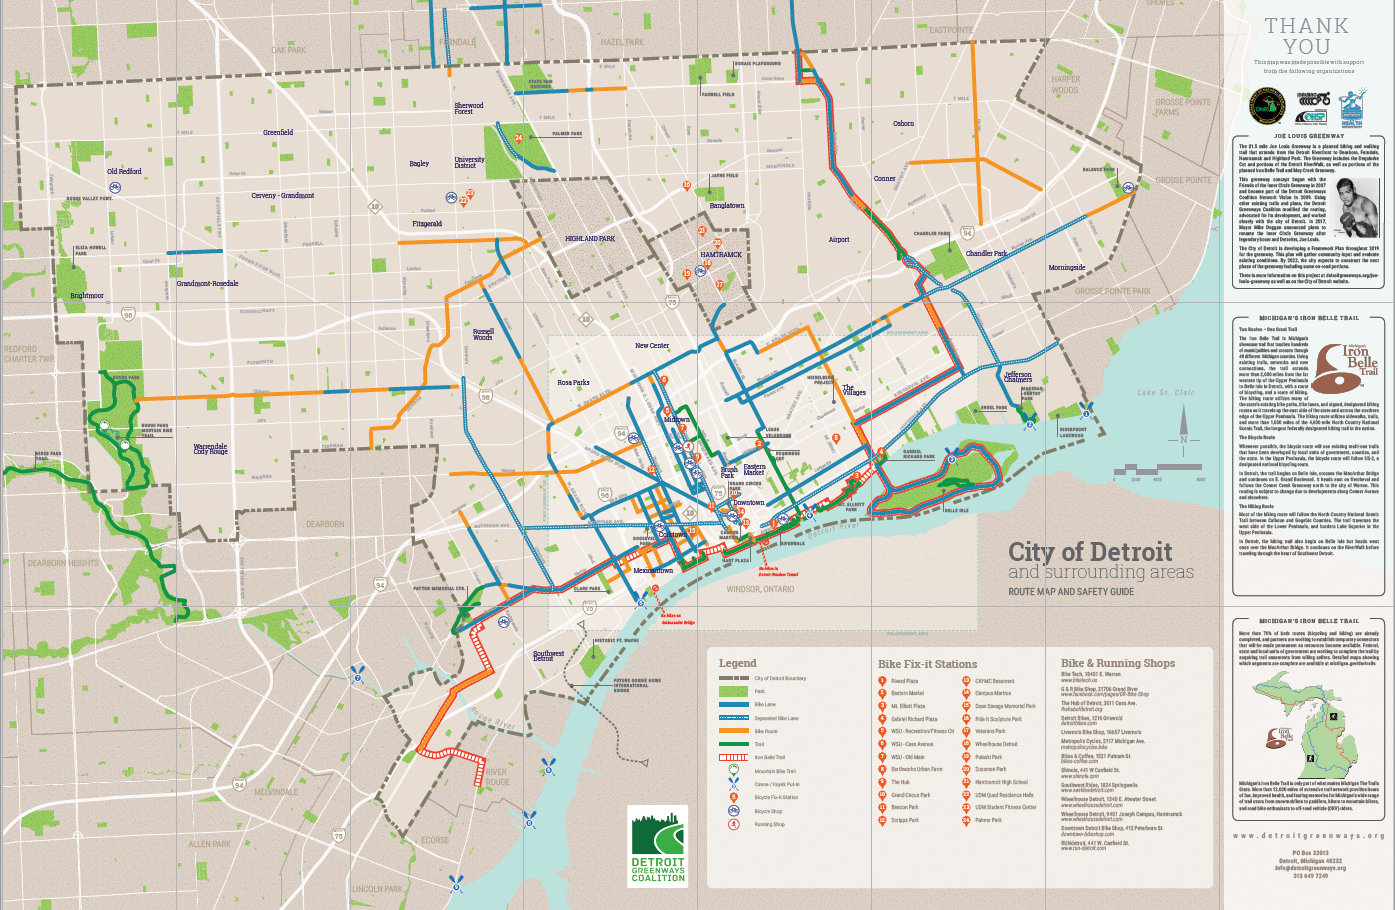 Hot off the presses: a Detroit Bike & Walk map | Detroit ... Detroit Map on st louis on map, chicago map, michigan map, great lakes map, baltimore map, new york map, quebec map, duluth map, cincinnati map, pittsburgh map, usa map, henry ford hospital map, royal oak map, atlanta map, toronto map, memphis map, las vegas map, united states map, compton map, highland park map,